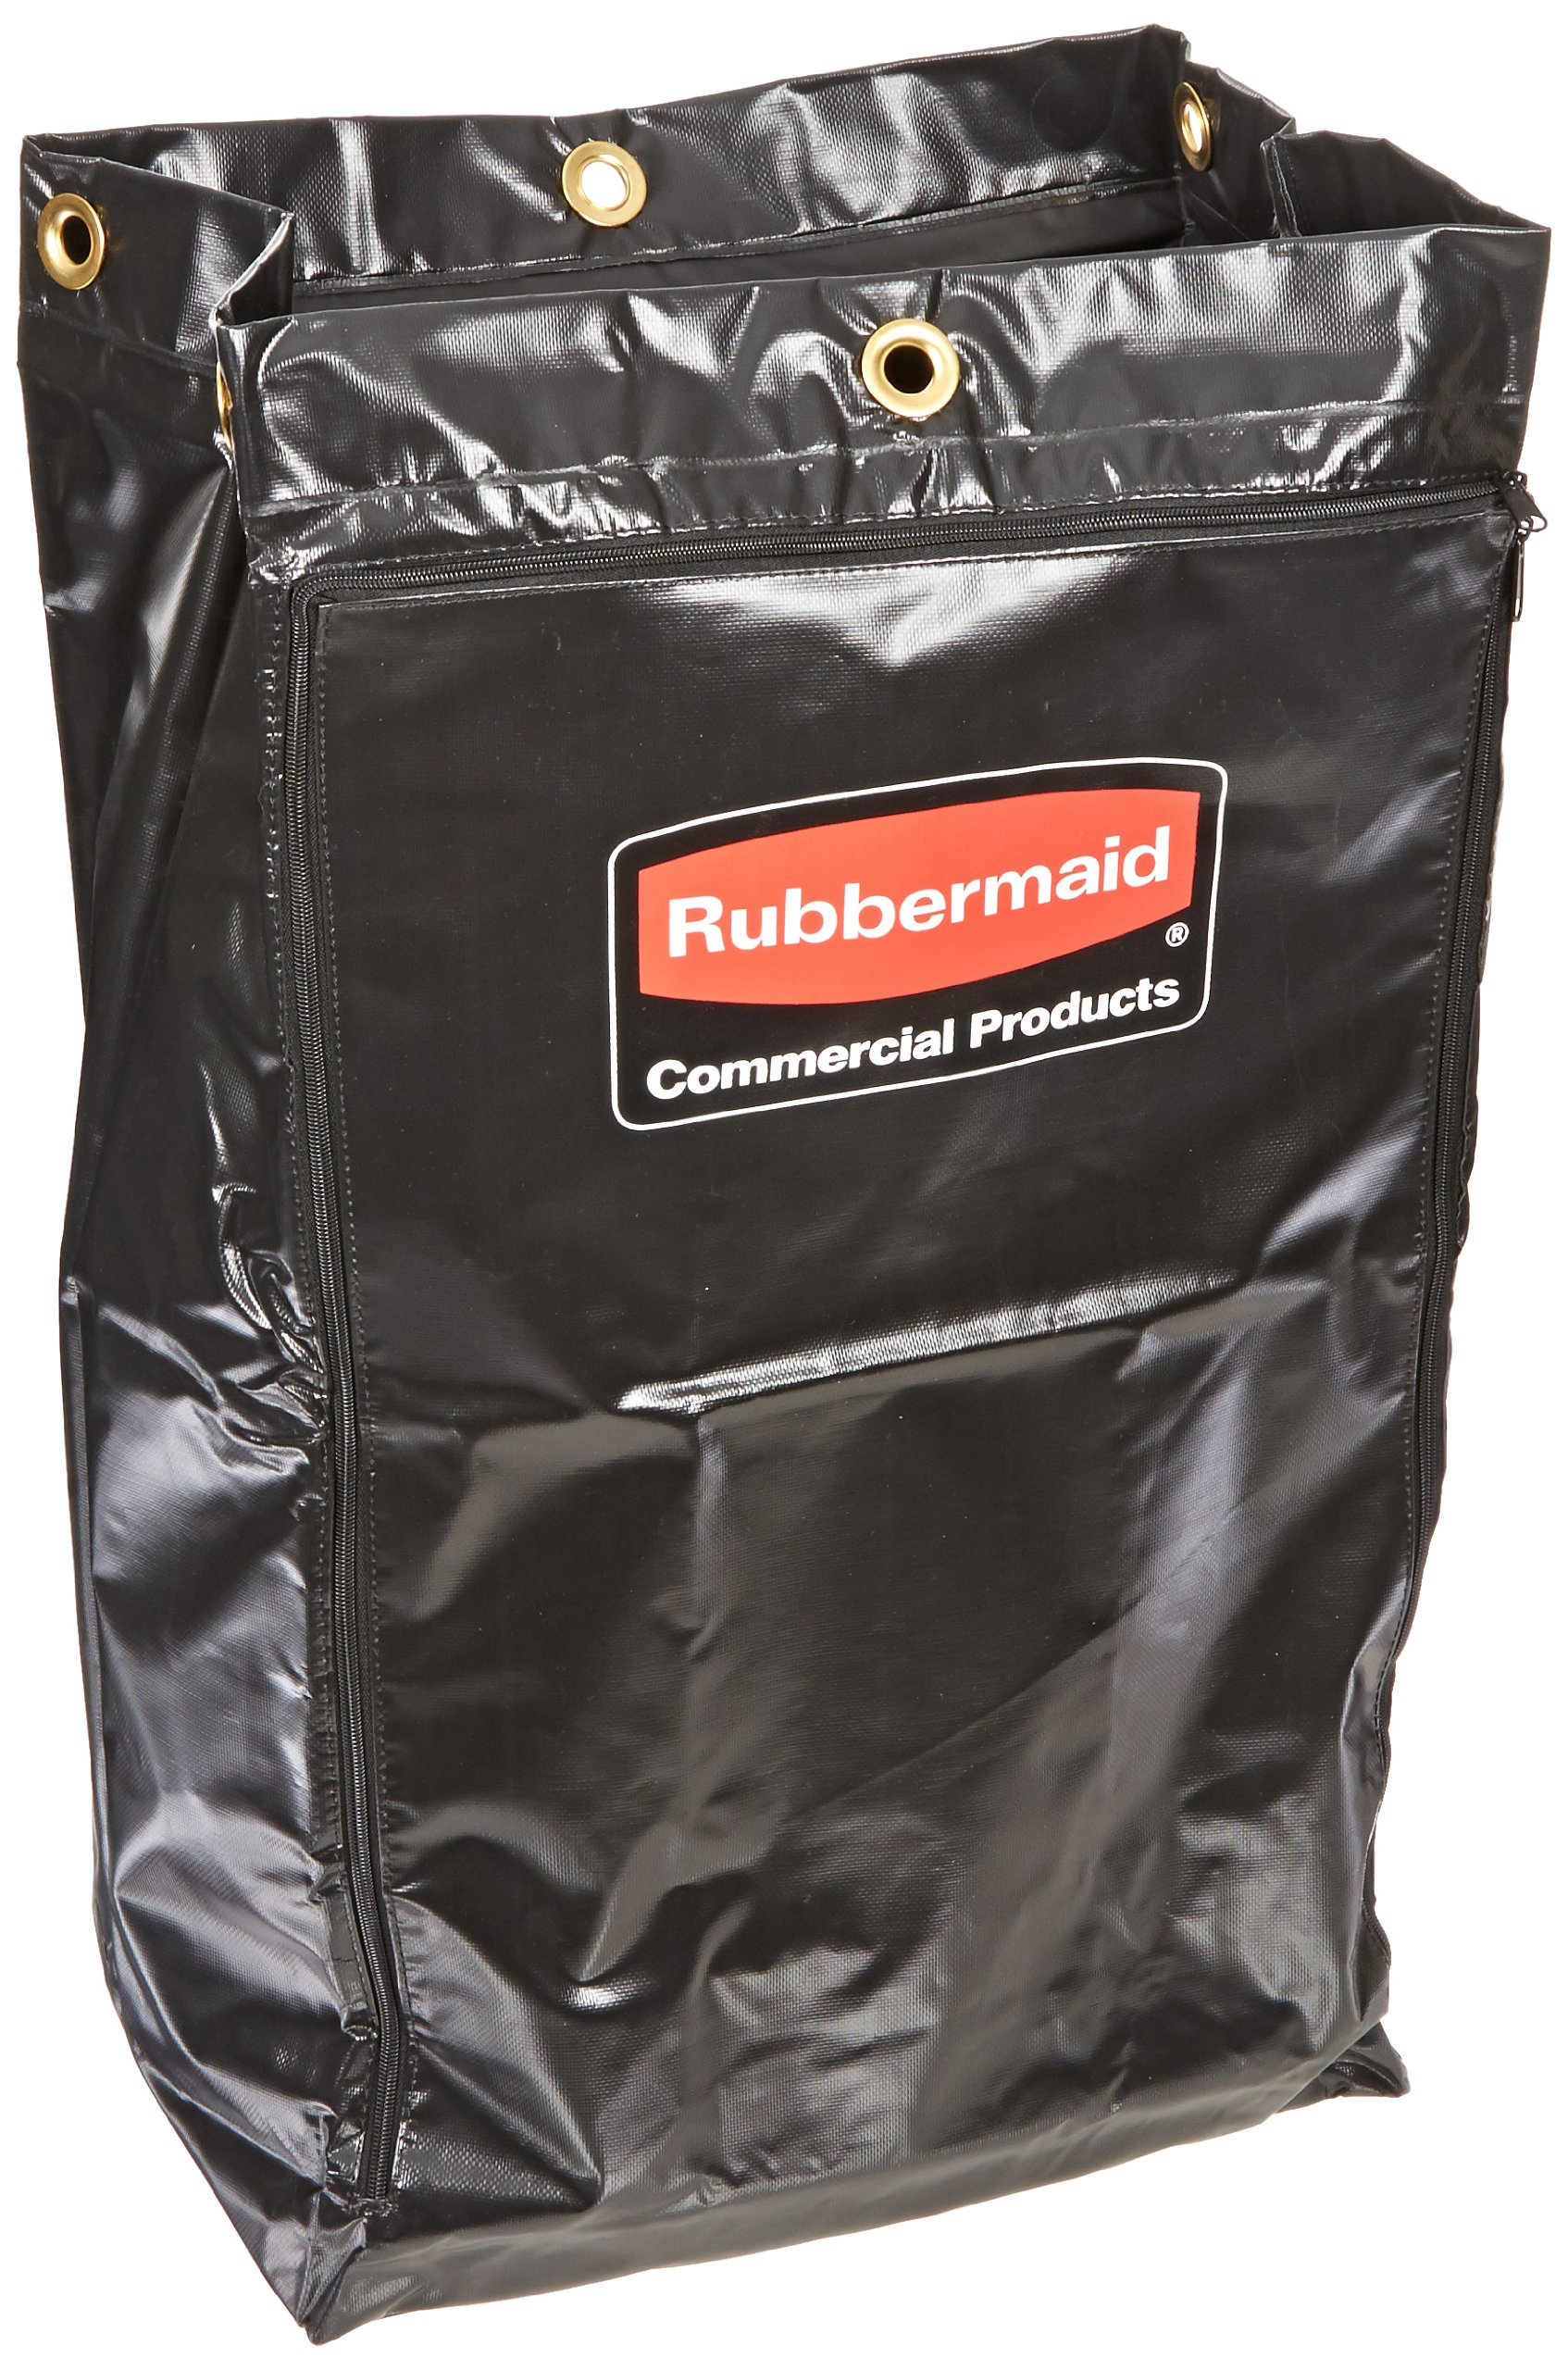 Rubbermaid Commercial 1861442 Executive Series Vinyl Replacement Bag for Cleaning Cart by Rubbermaid Commercial Products